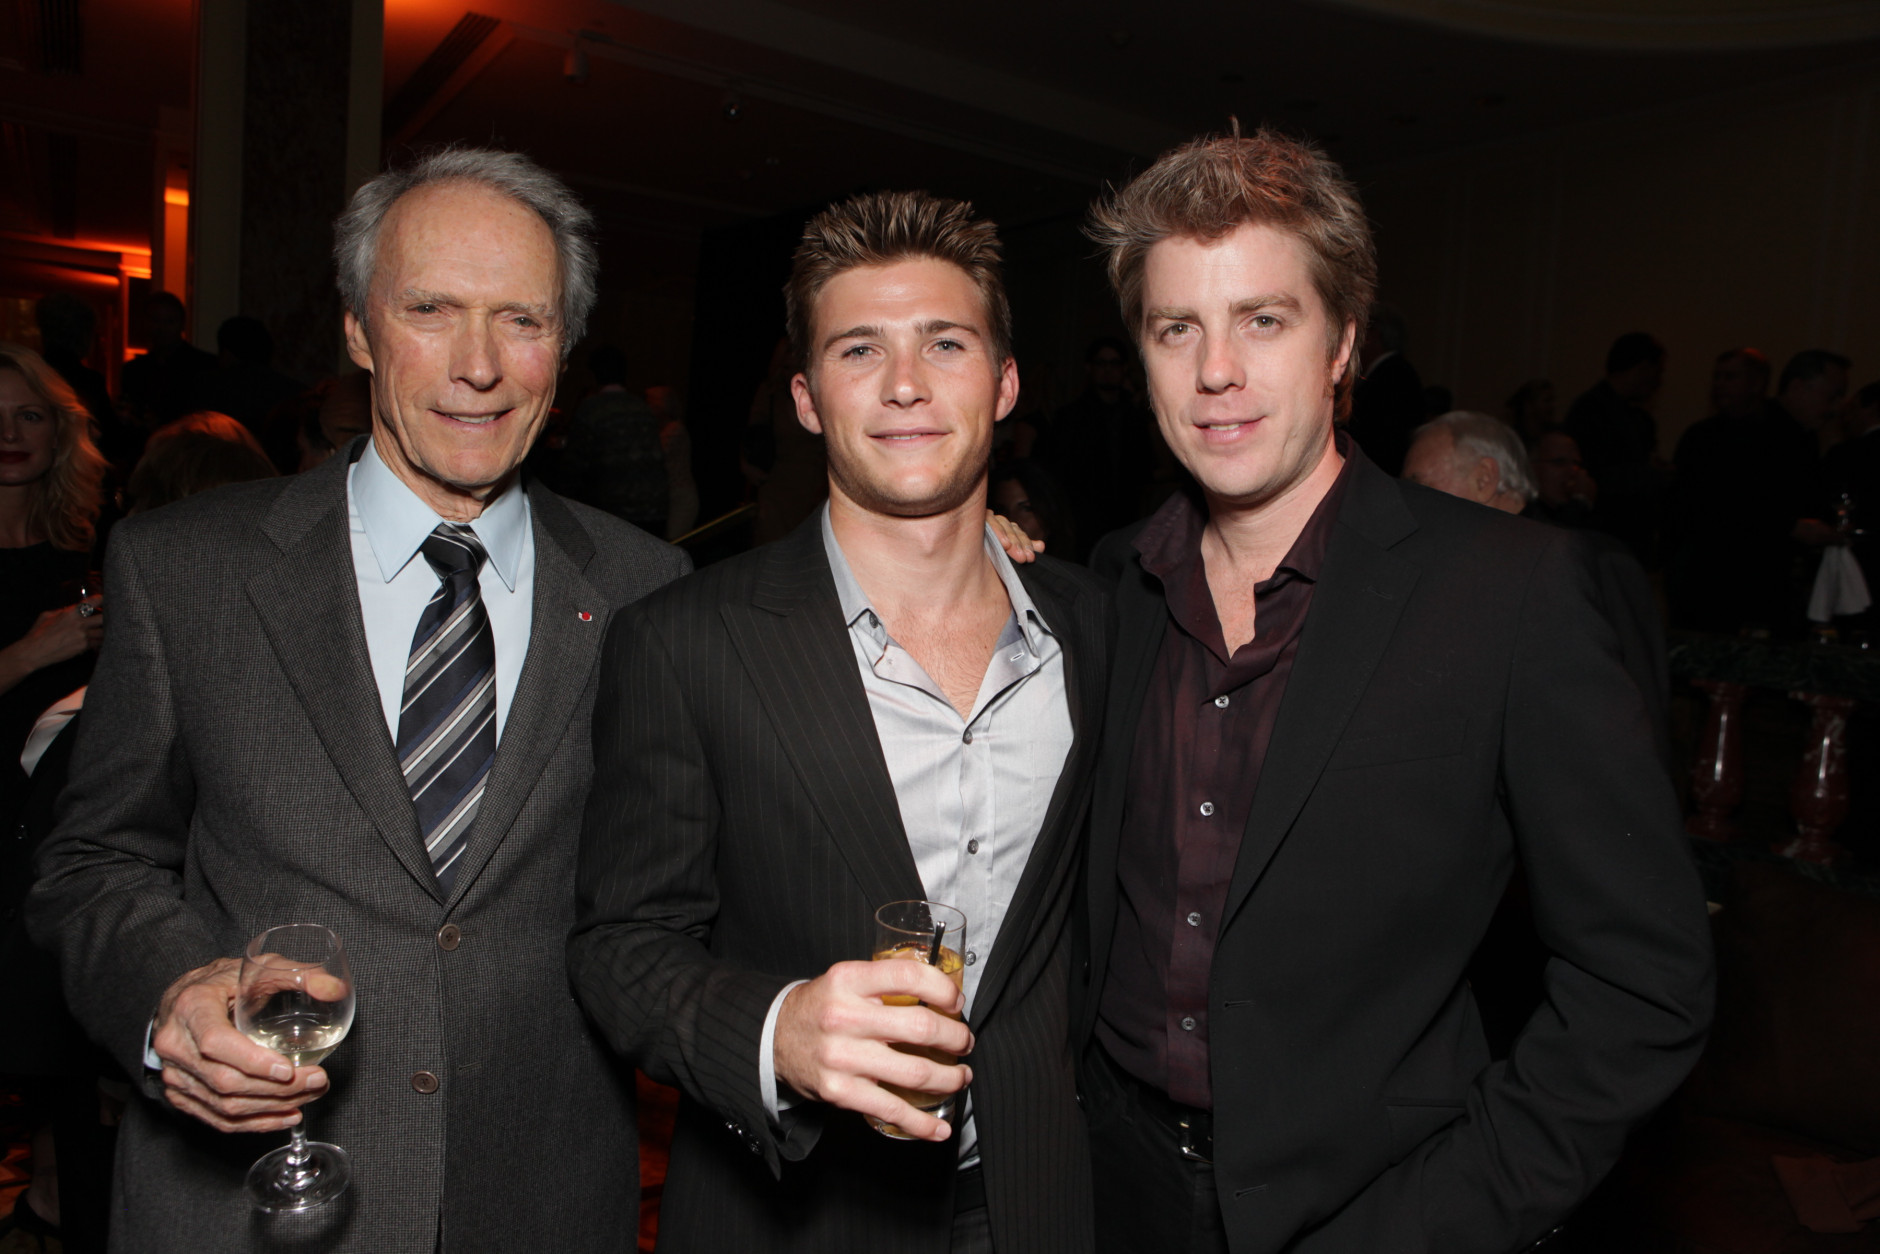 BEVERLY HILLS, CA - DECEMBER 03:**EXCLUSIVE** Director Clint Eastwood, Scott Eastwood and Kyle Eastwood at Warner Bros. Pictures Los Angeles Premiere of 'Invictus' on December 03, 2009 at the Academy of Motion Picture Arts & Sciences in Beverly Hills, California. (Photo by Eric Charbonneau/Invision/AP Images)